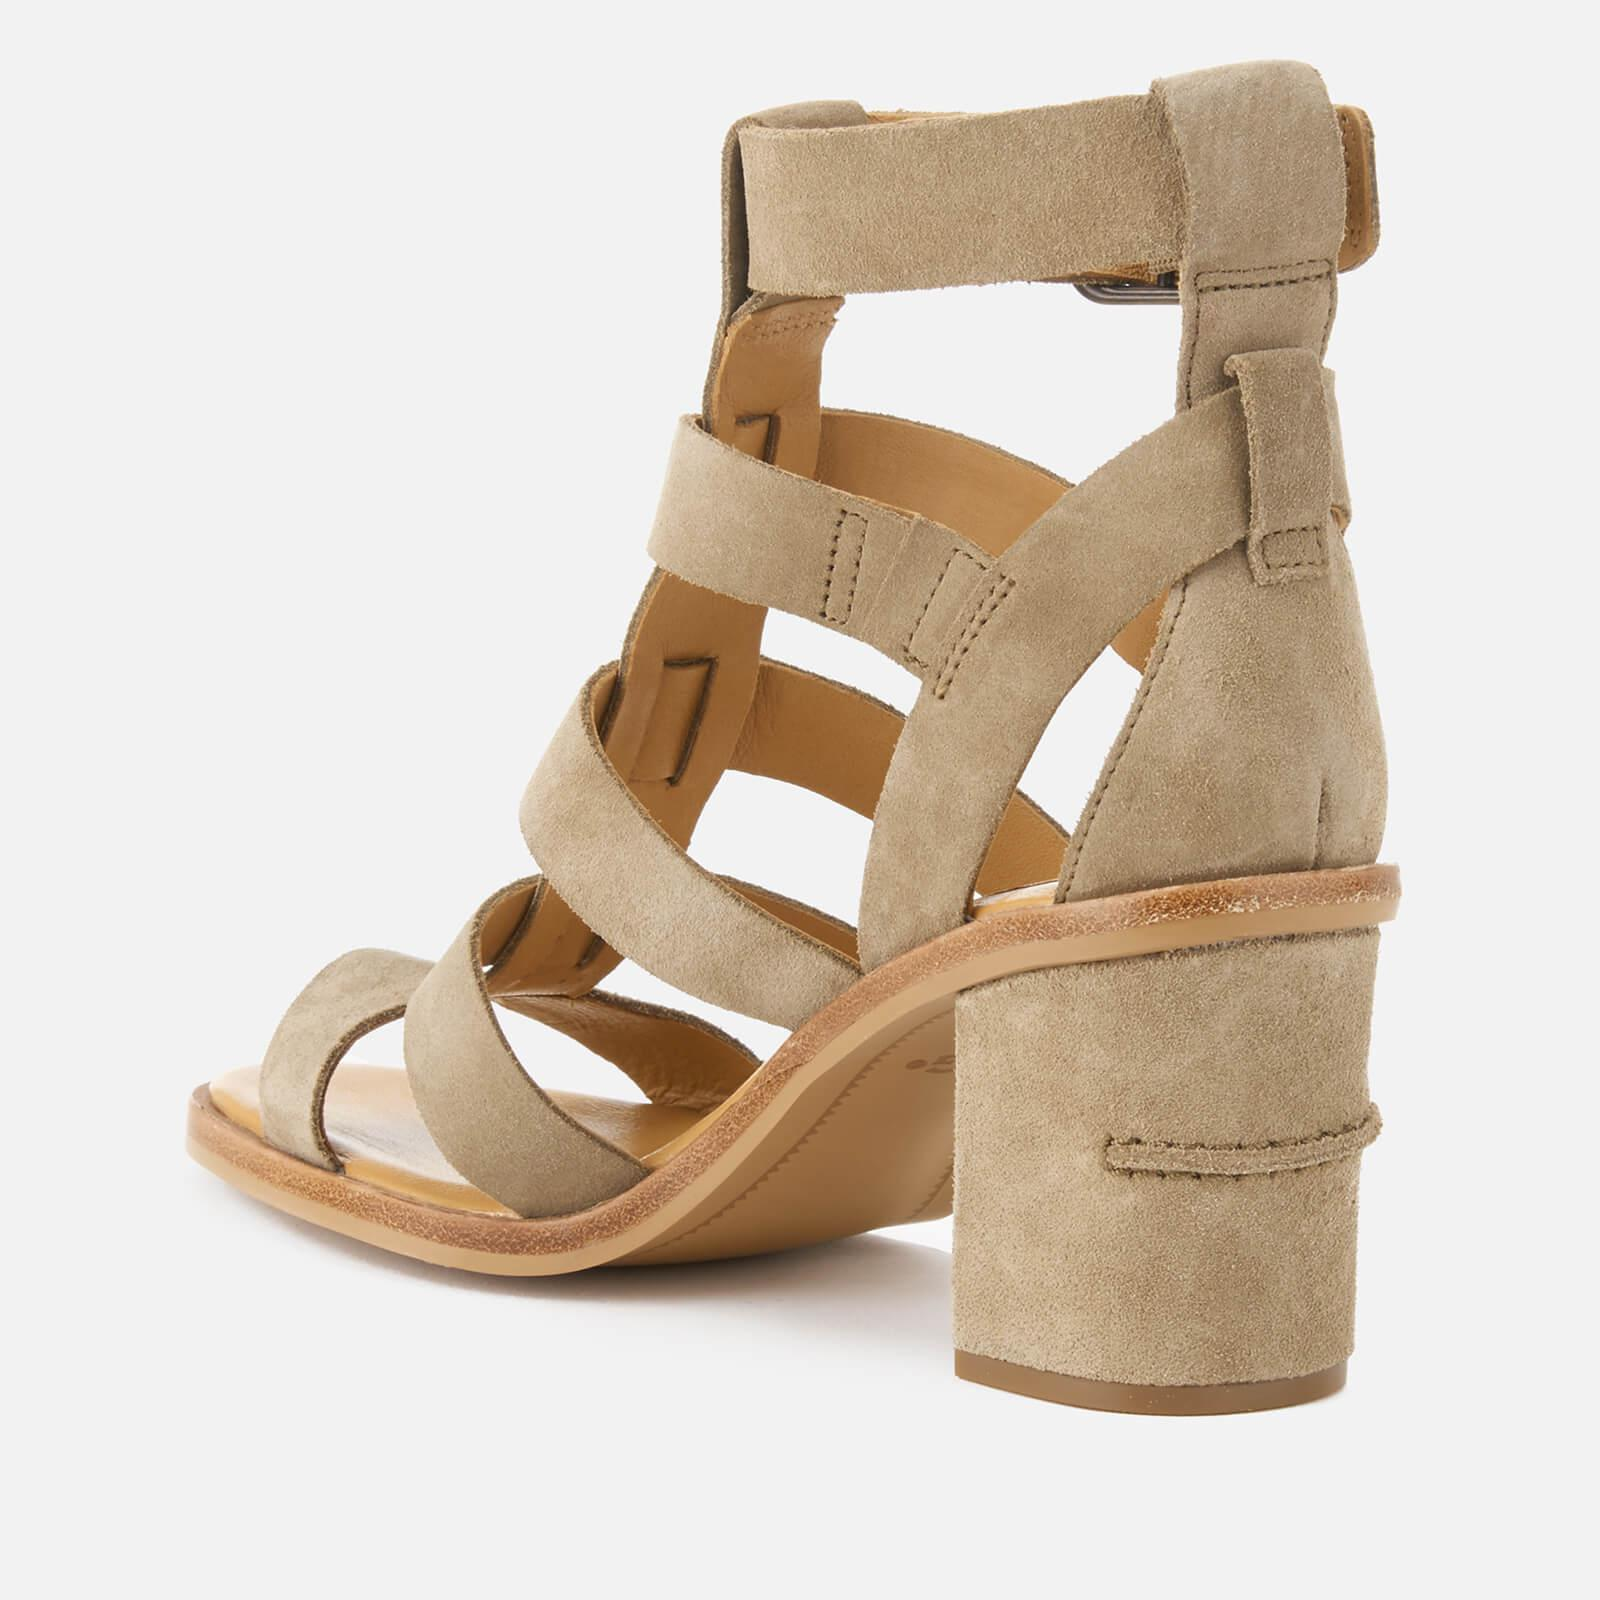 dc940b051 Ugg - Green Macayla Gladiator Heeled Sandals - Lyst. View fullscreen